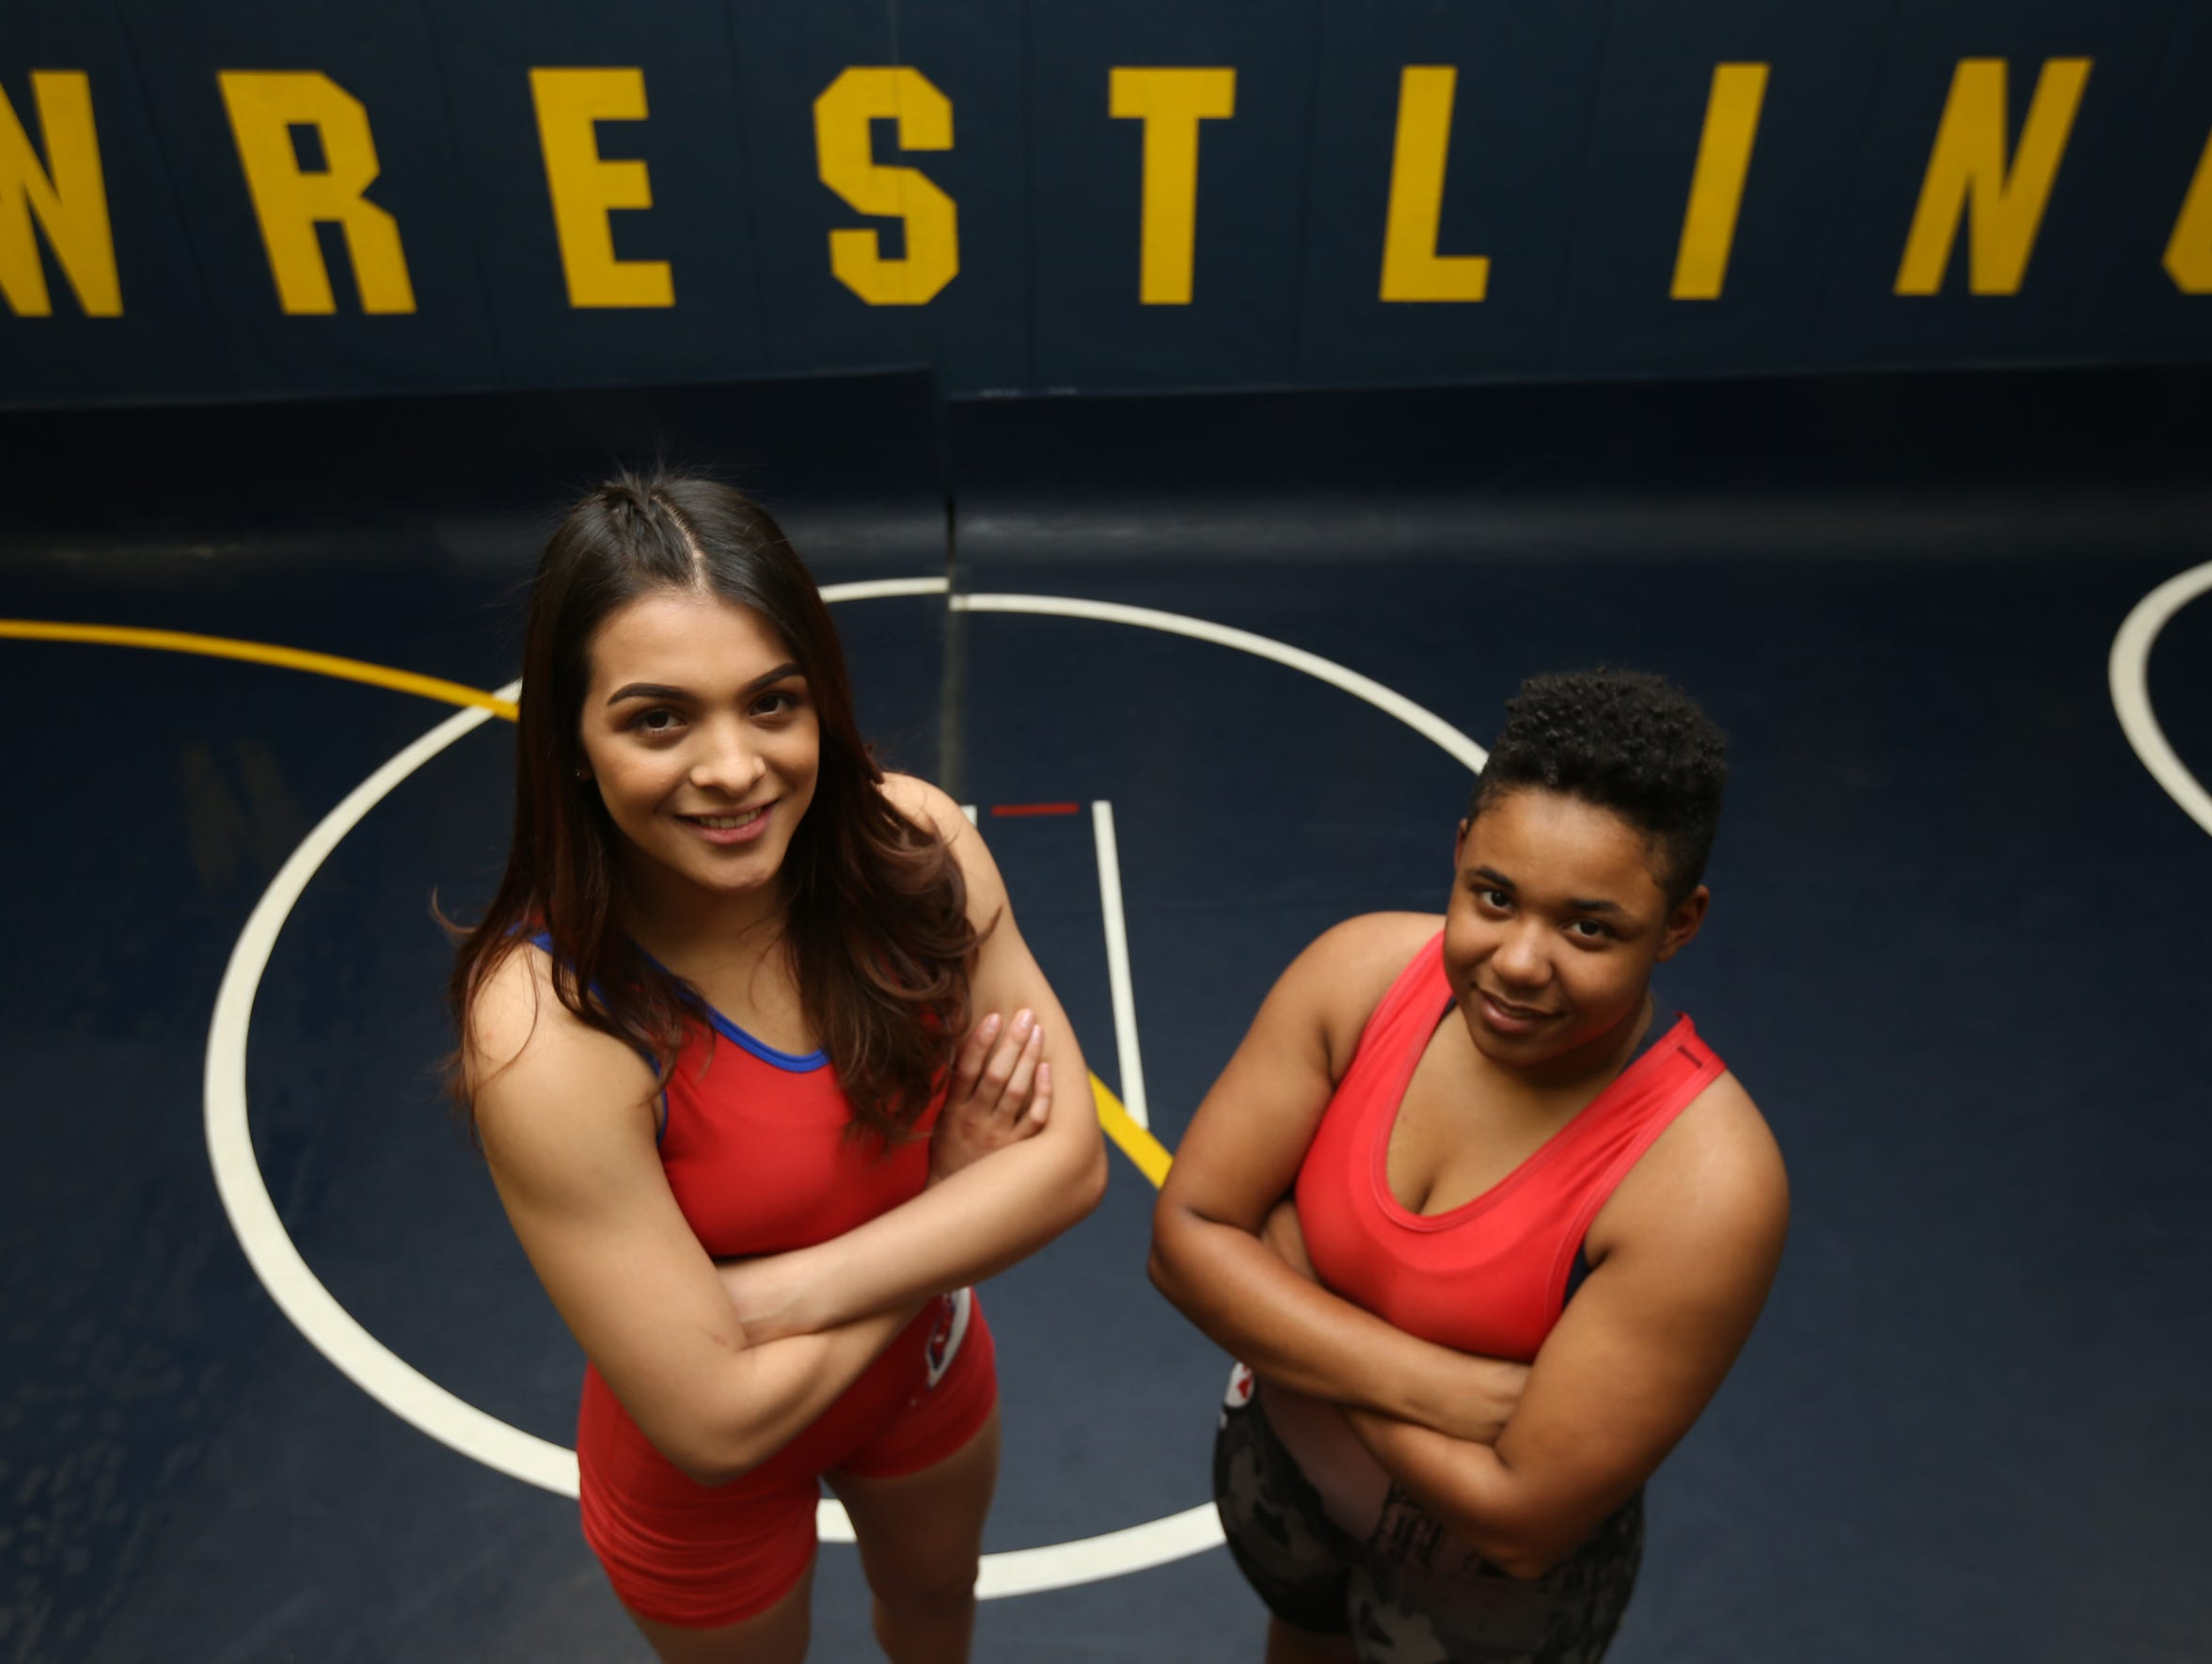 Americas' Adrienne Garcia, left, and Hanks' Gianna